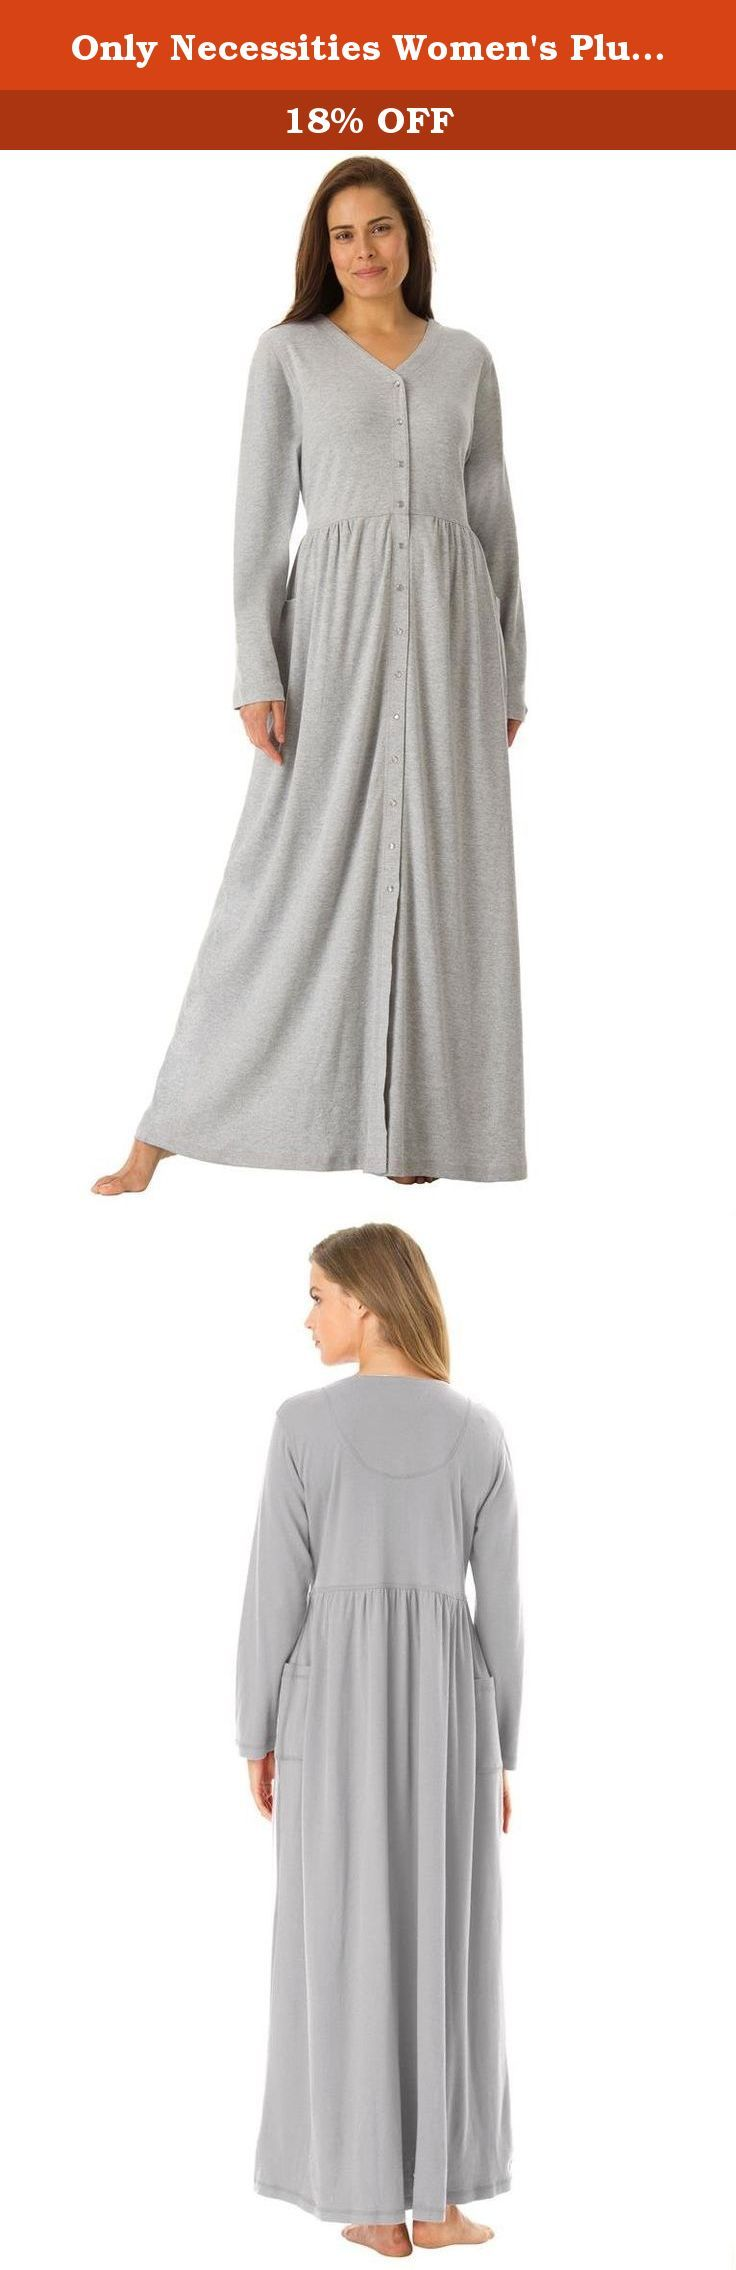 """Only Necessities Women's Plus Size Long Knit Lounger Heather Grey,2X. is beautiful and flattering, with lots of room to move. Woman Within provides the most comfortable fit in plus size sleepwear. Tagfree Long sleeves V-neck Snap front Shirred empire waist 2 patch pockets Full sweep skirt 52"""" long Washable polyester/cotton knit, USA or imported Women's plus size robes & plus size sleepwear in sizes M(14W-16W), L(18W-20W), 1X(22W-24W), 2X(26W-28W), 3X(30W-32W), 4X(34W-36W), 5X(38W-4."""